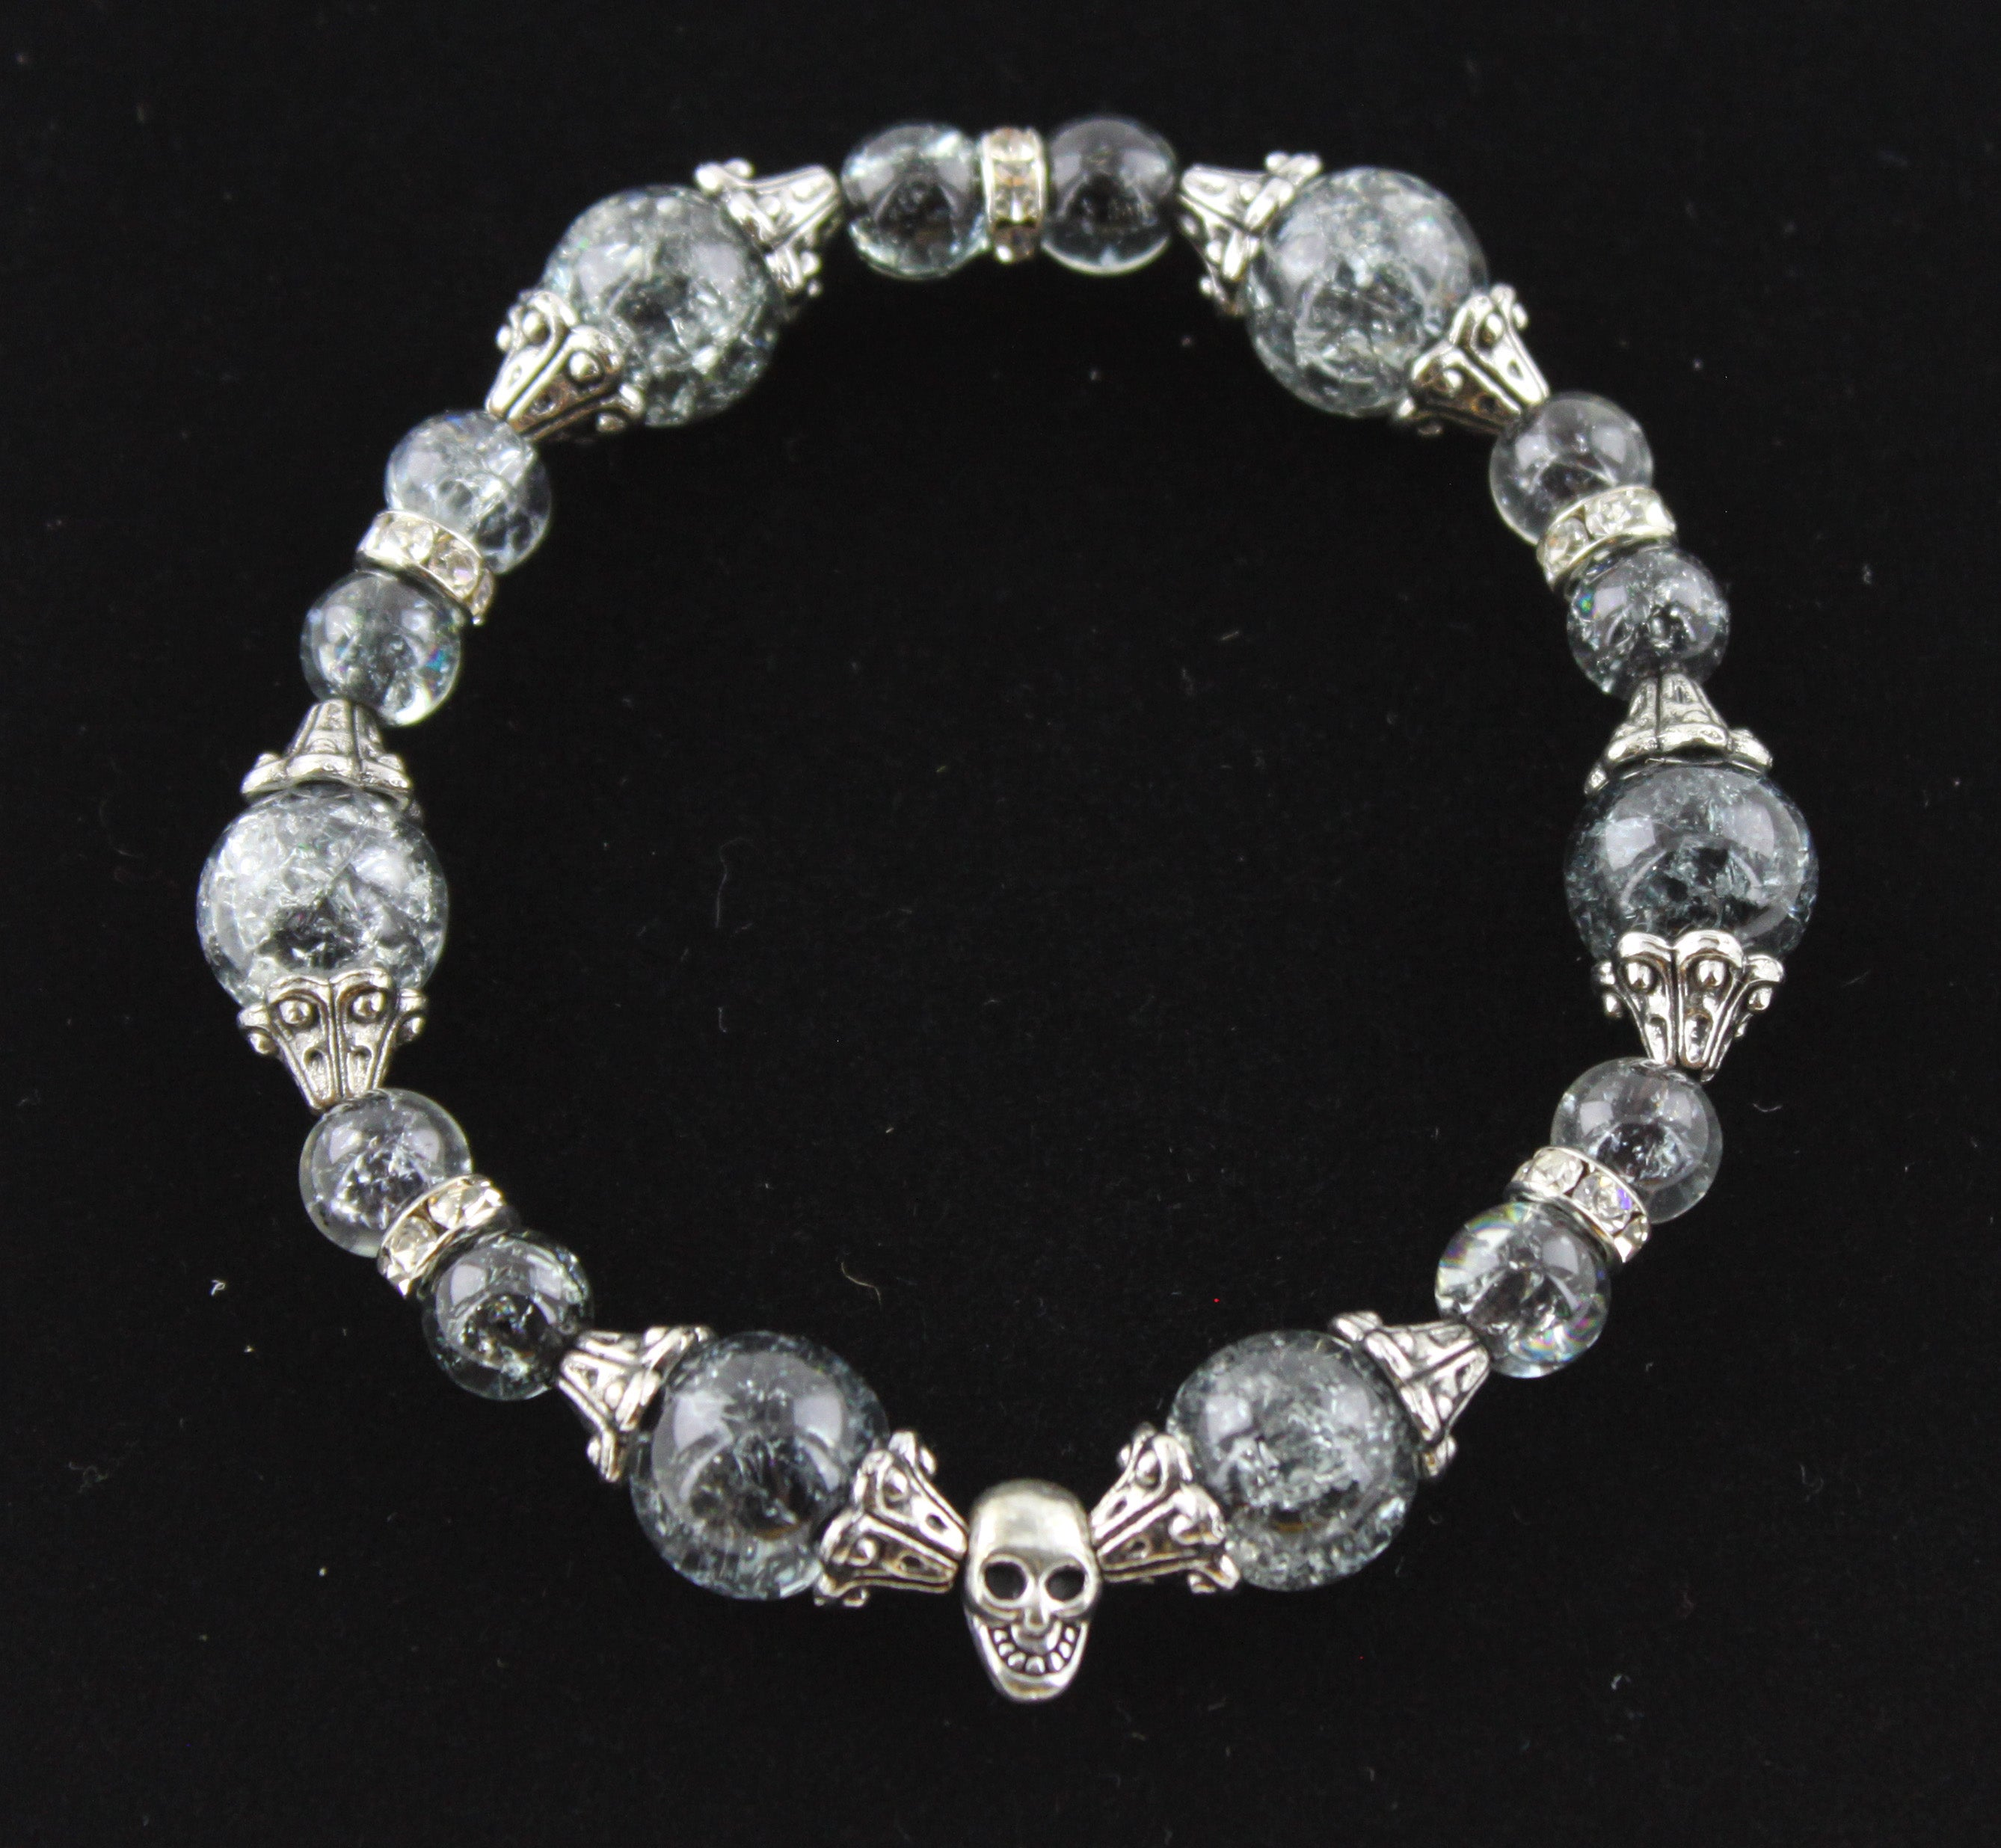 Single Skull Cracked Grey Glass Bead Bracelet